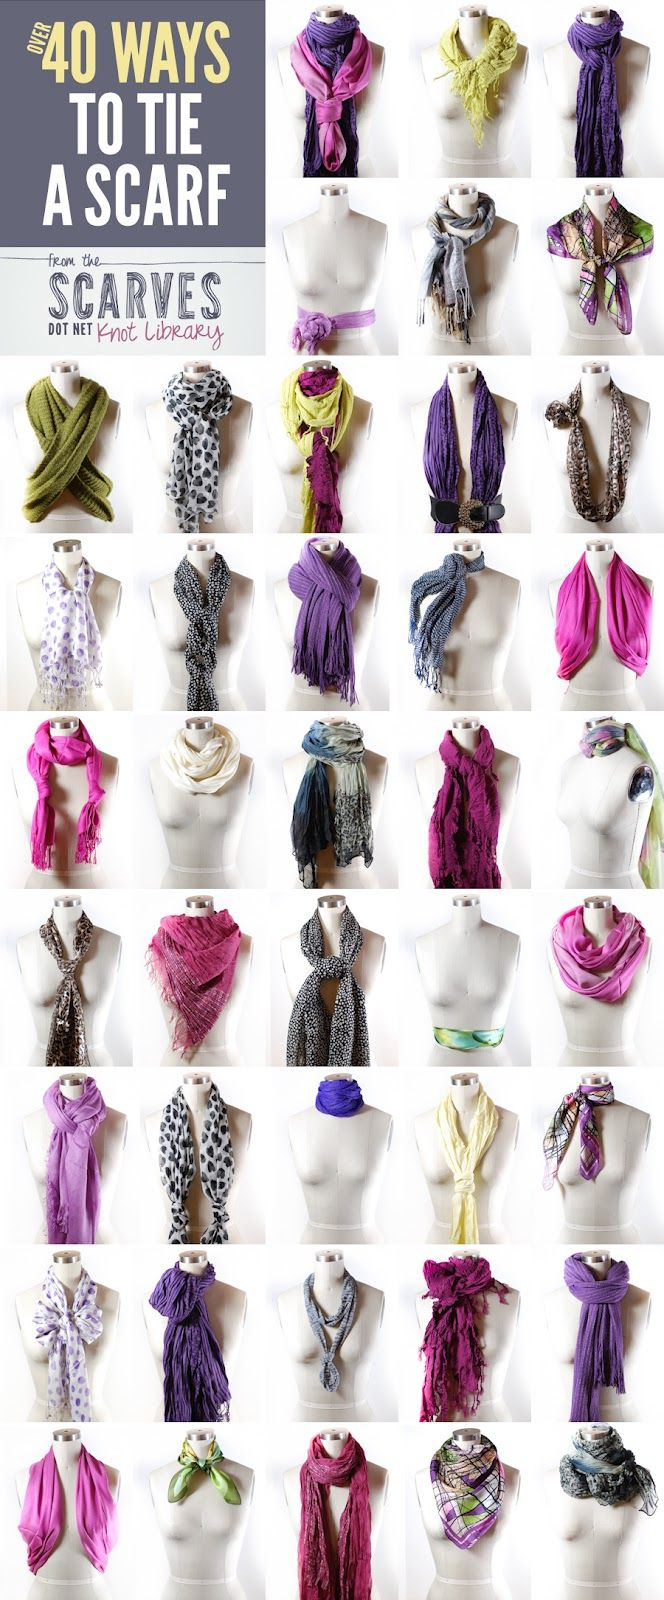 Good and different ideas on how to wear scarves.